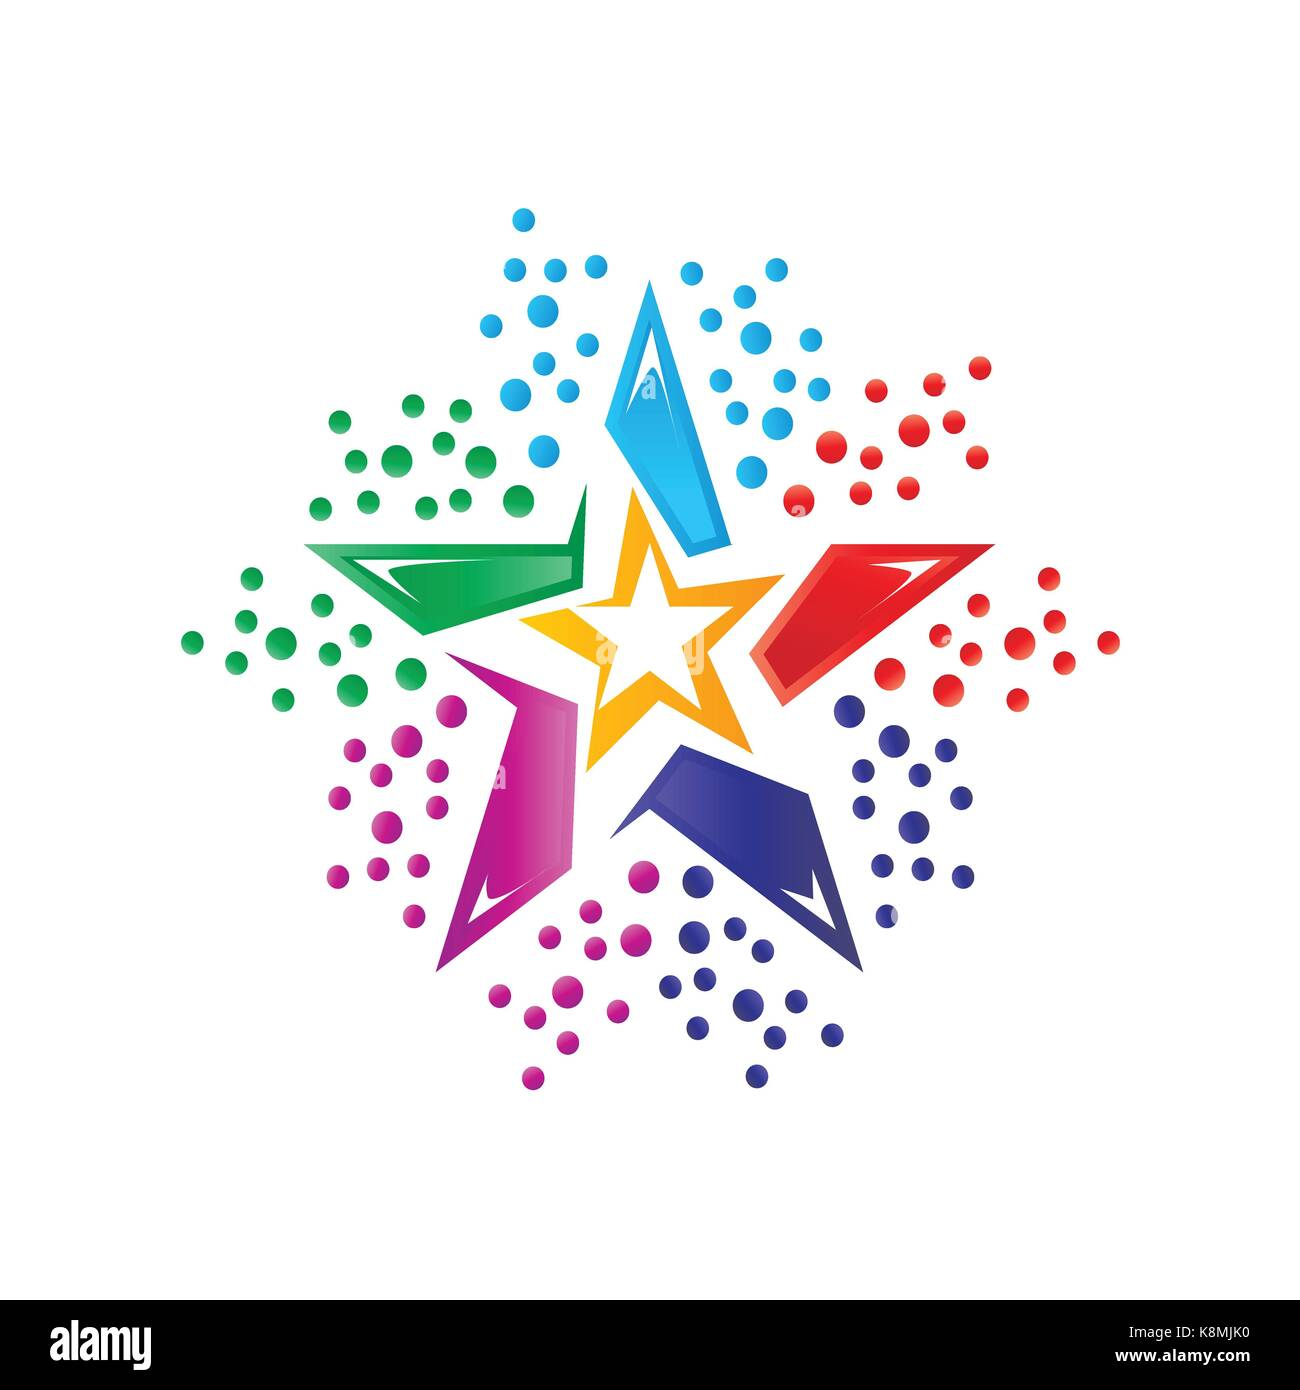 colorful star logo, star logo, icon design, isolated on white background. Stock Vector